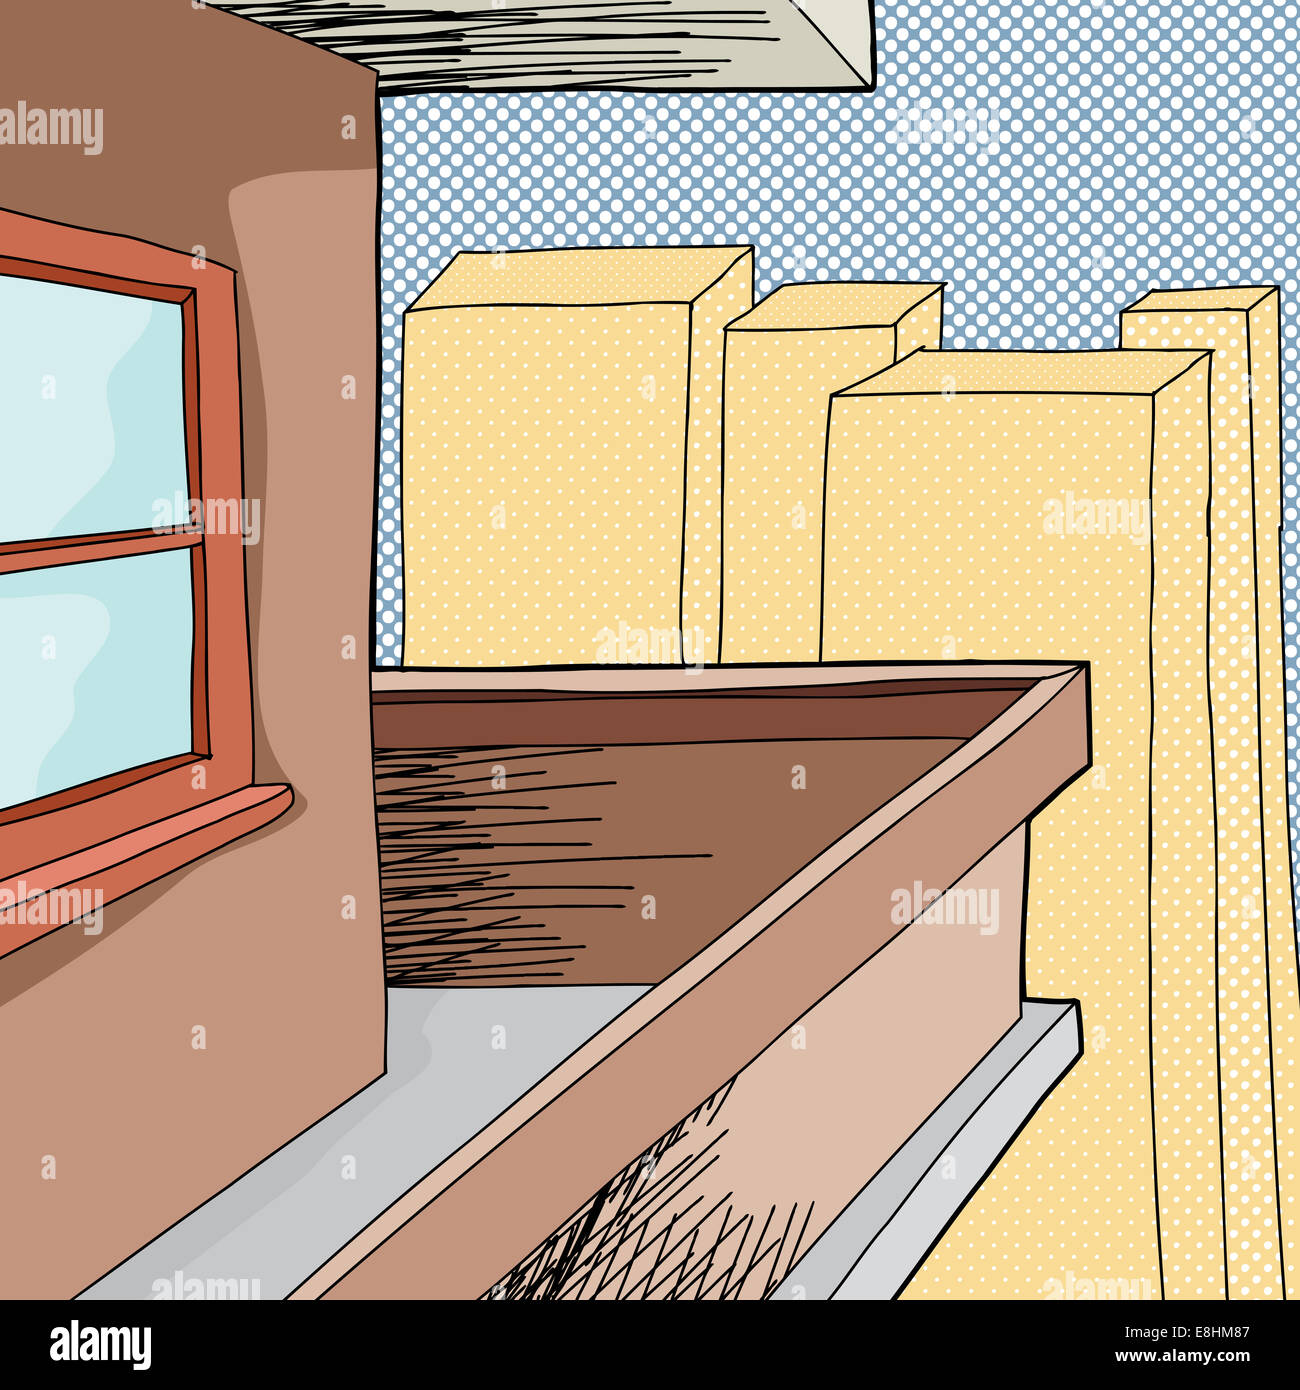 Apartment Shopper: Cartoon Balcony On Apartment With Halftone Background